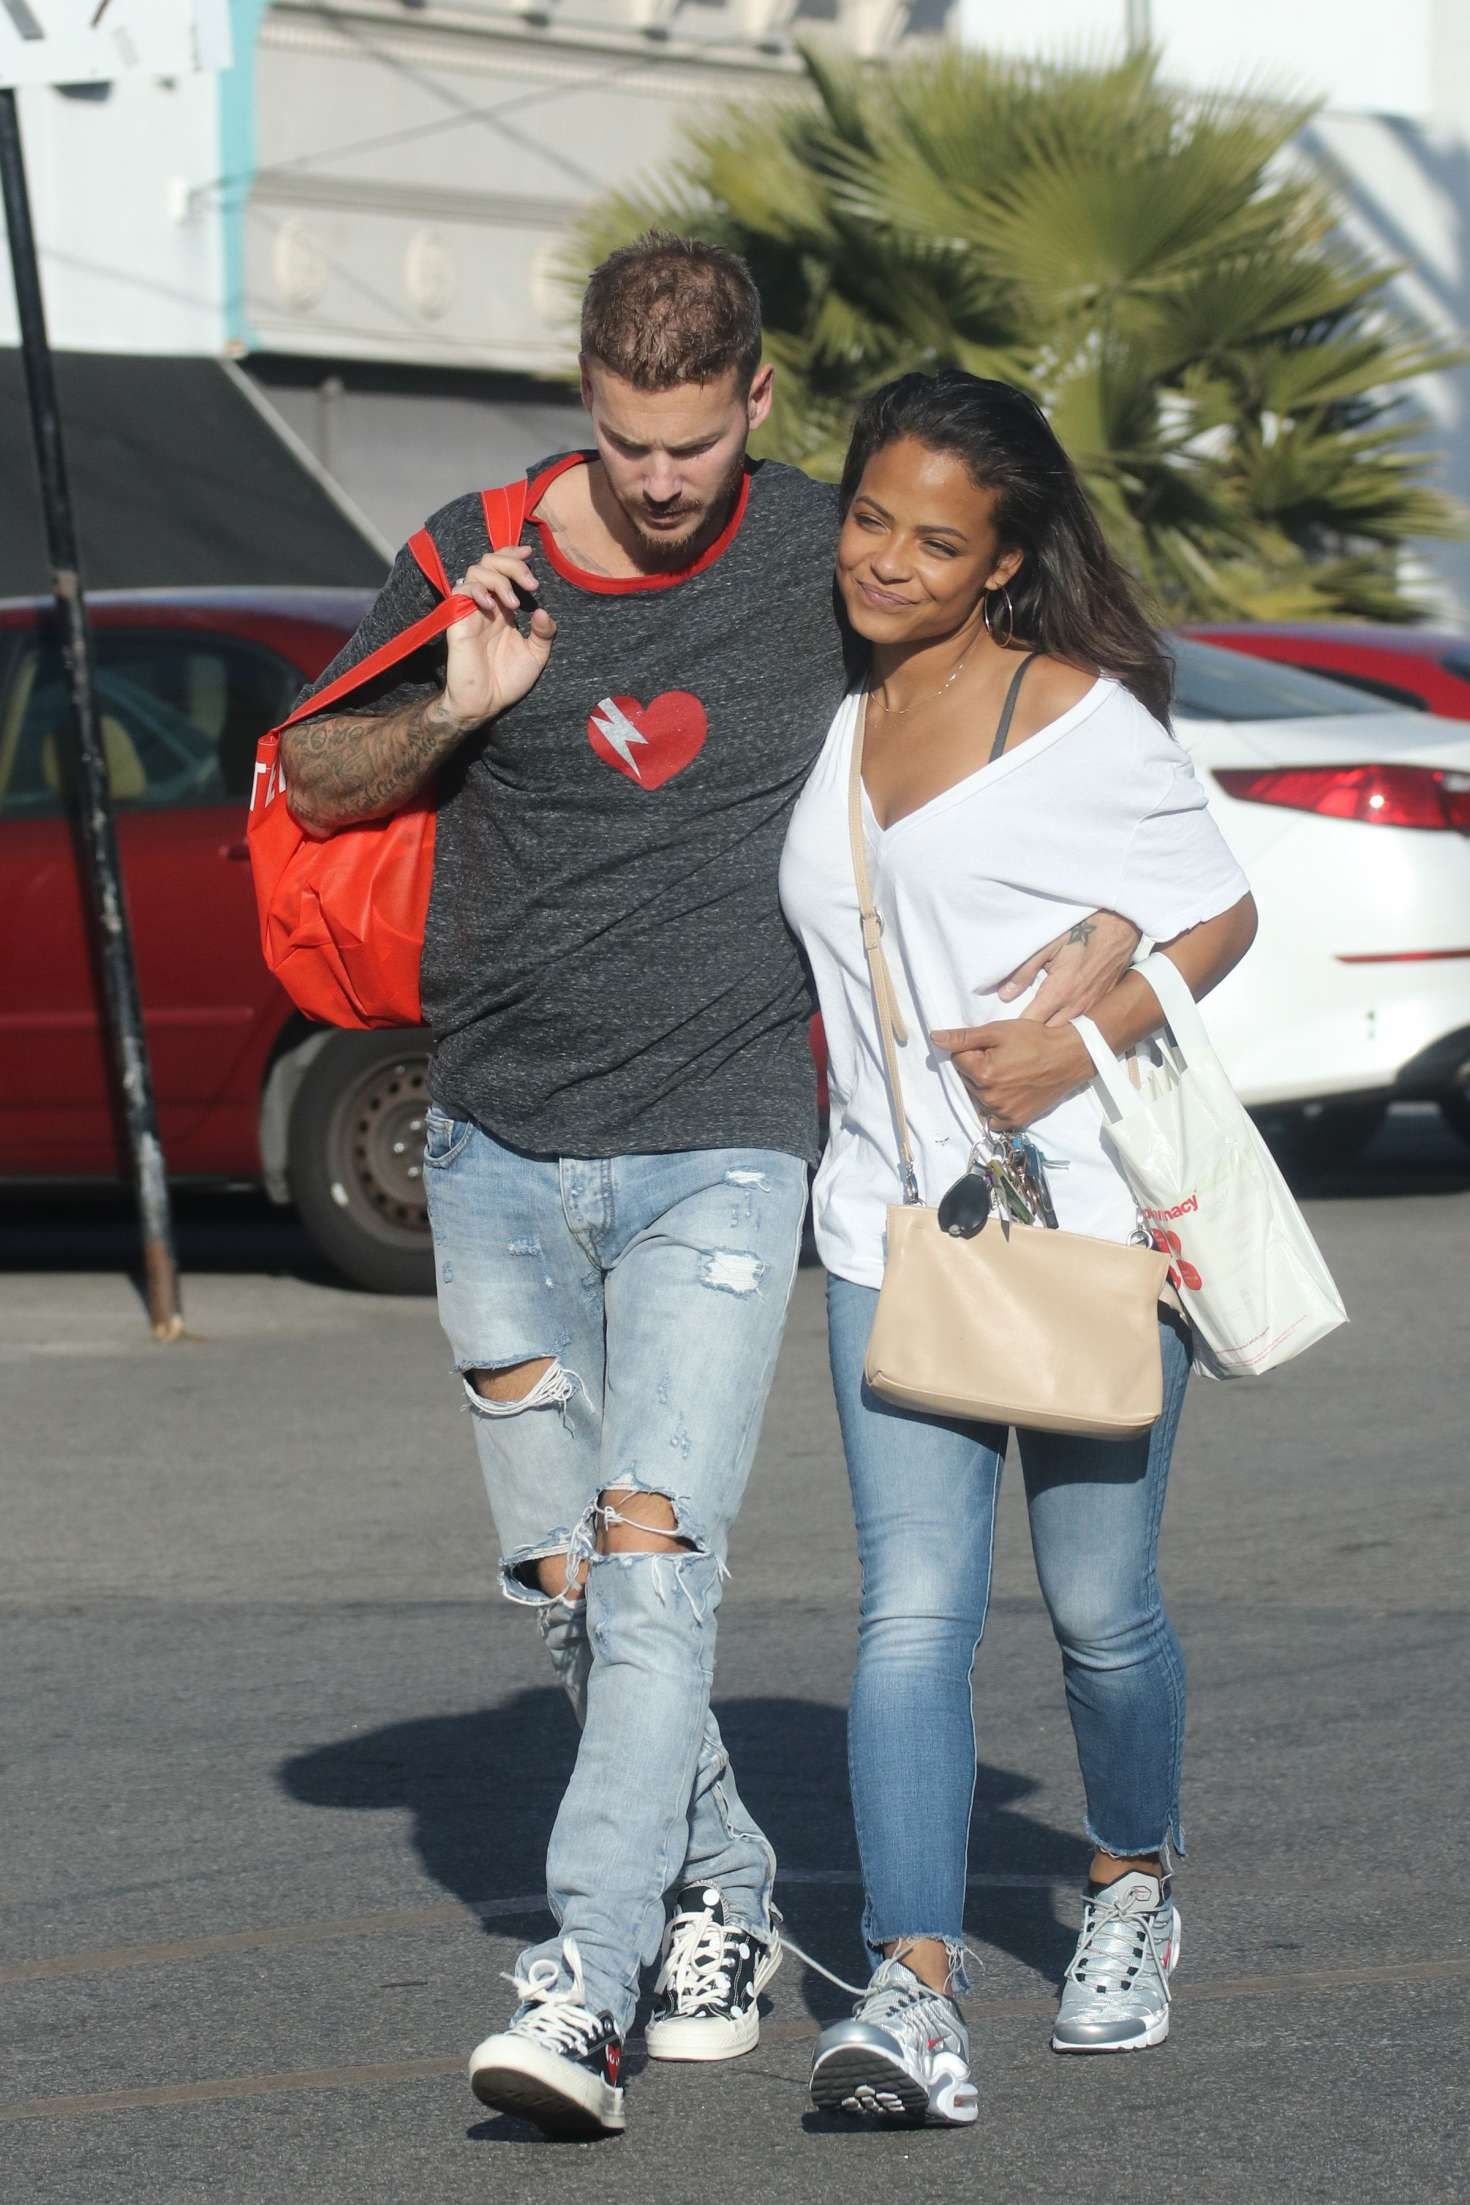 Christina Milian and boyfriend Matt Pokora out in LA -16 ...